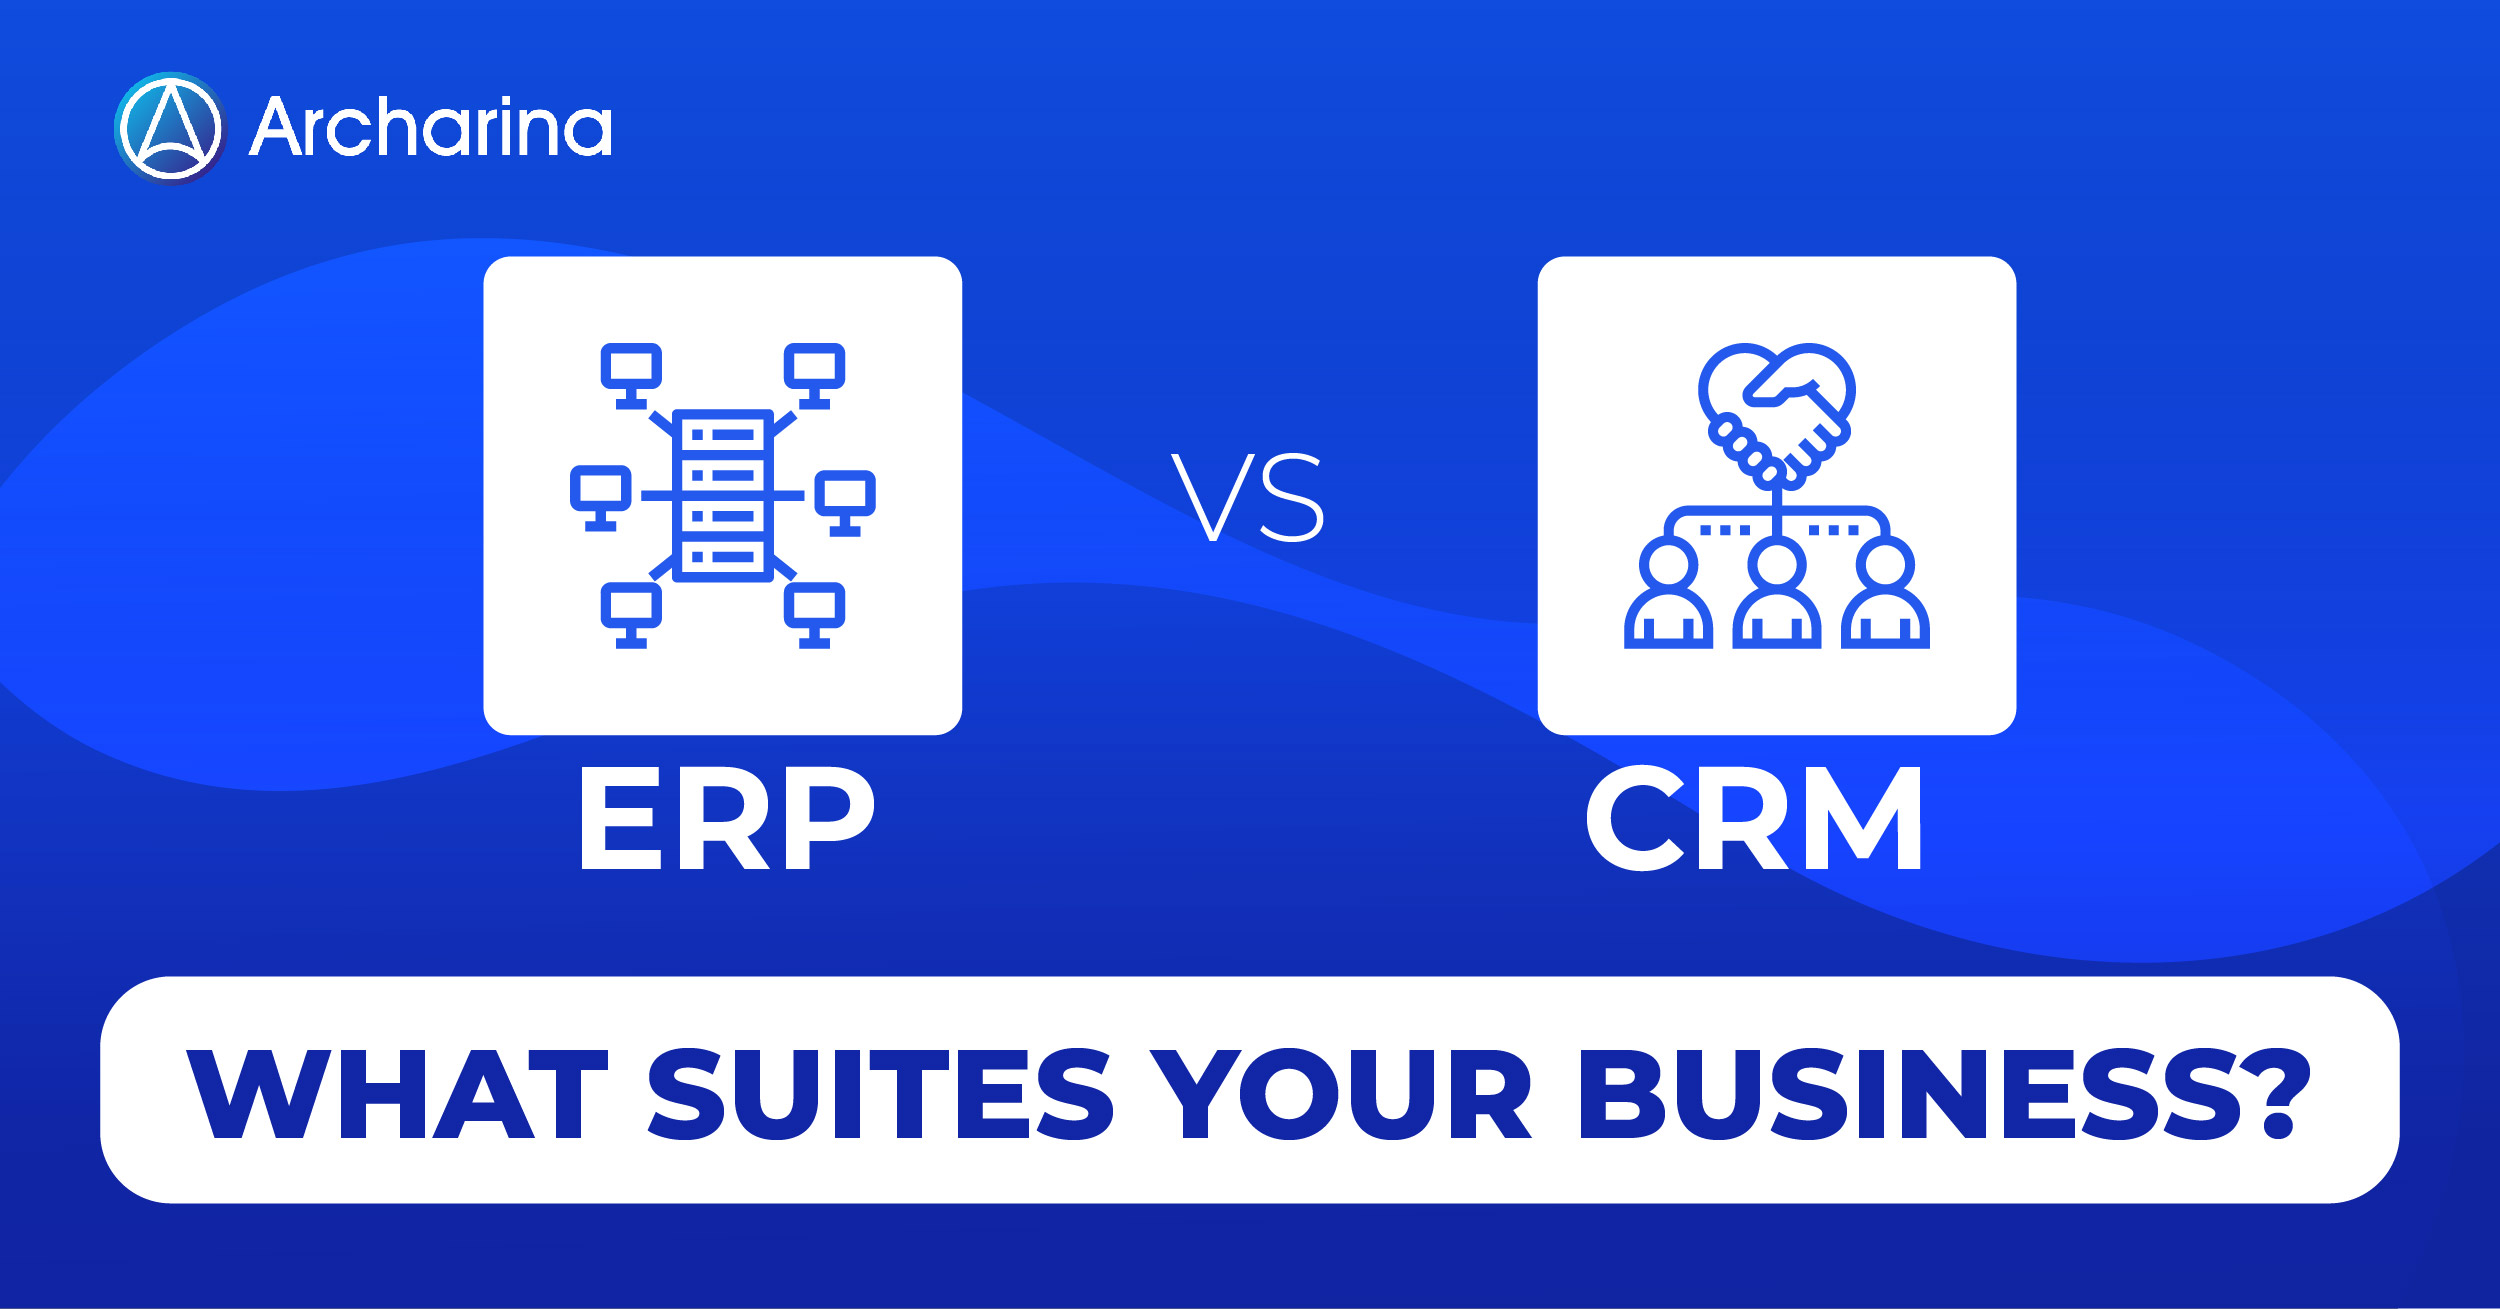 CRM vs ERP: What Suites Your Business?